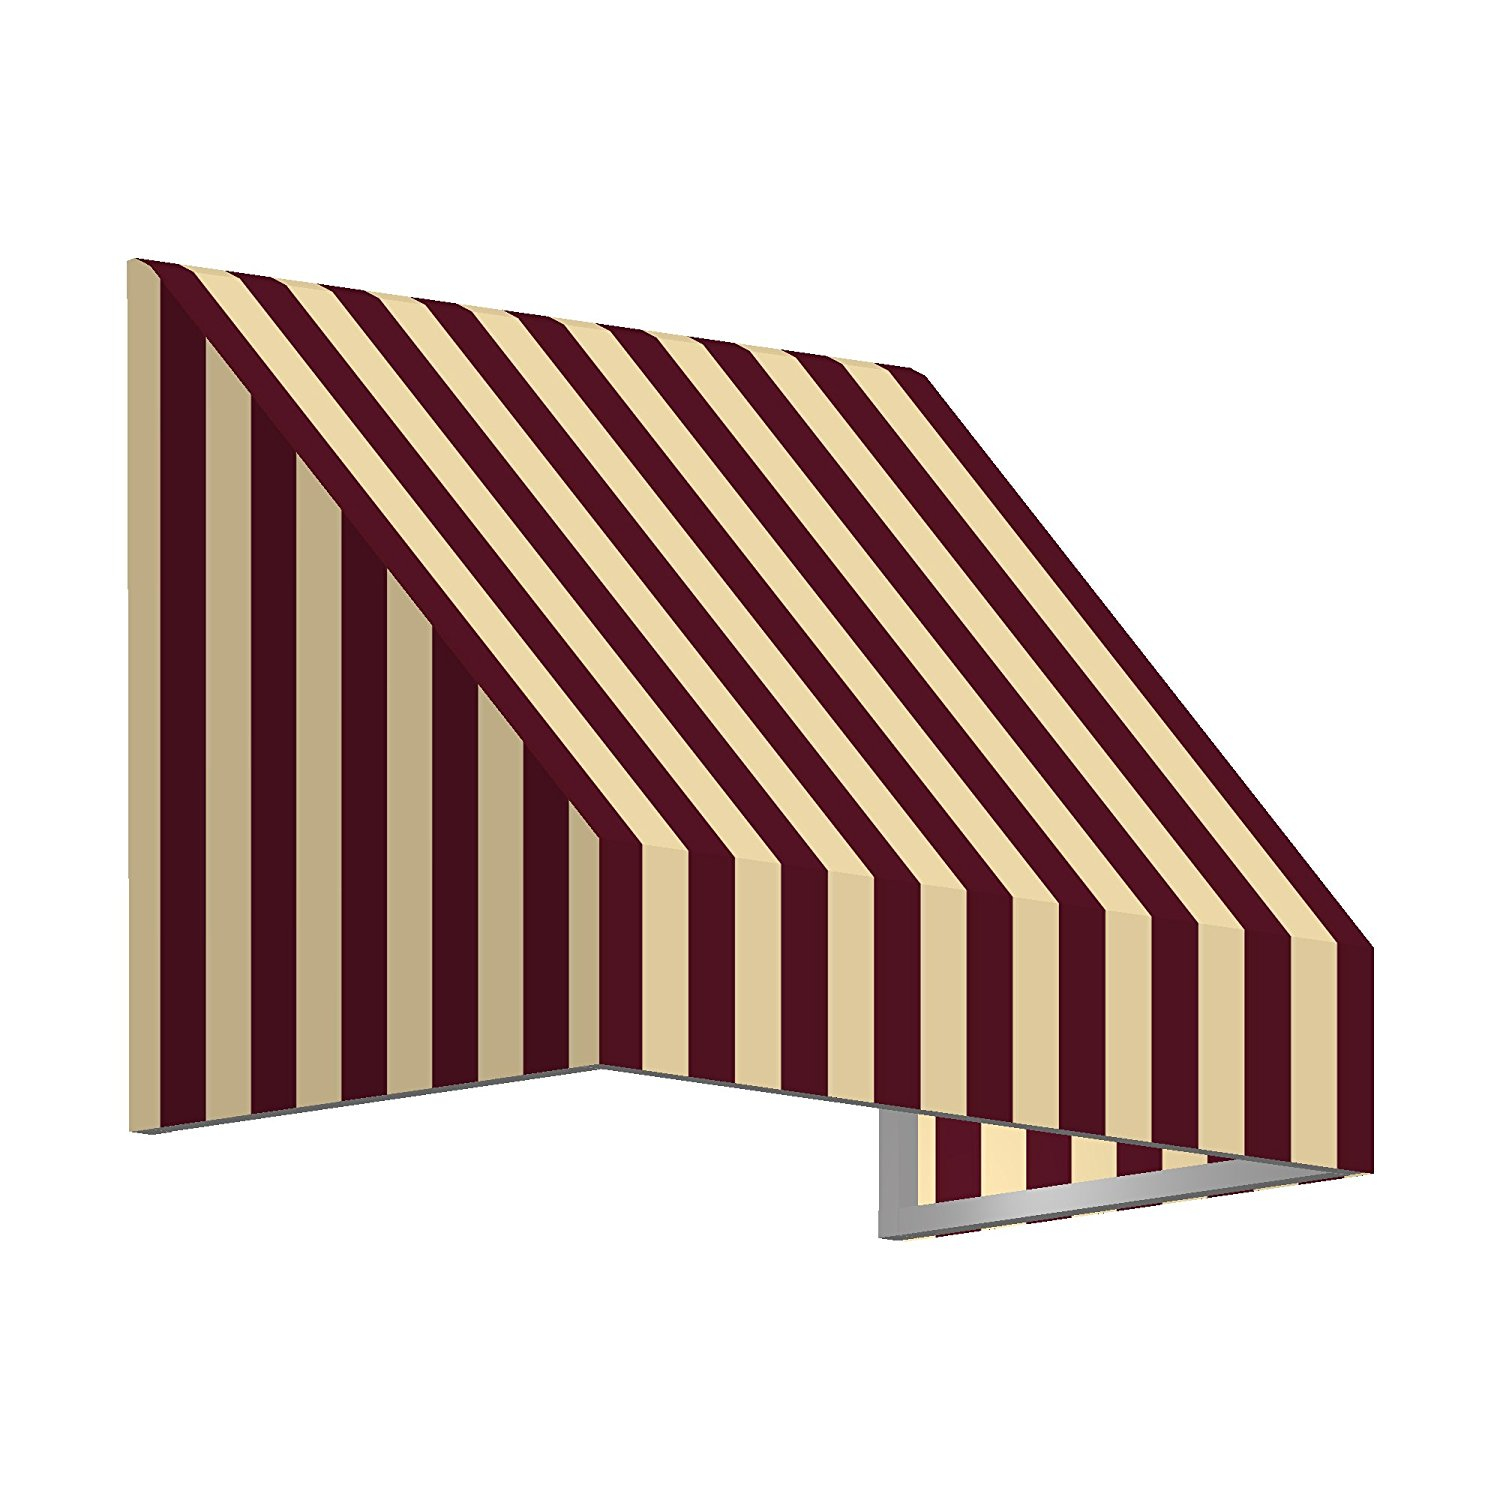 Beauty-Mark EN1030-a-5BT Window/Entry Awning, not applicable, Multicolor